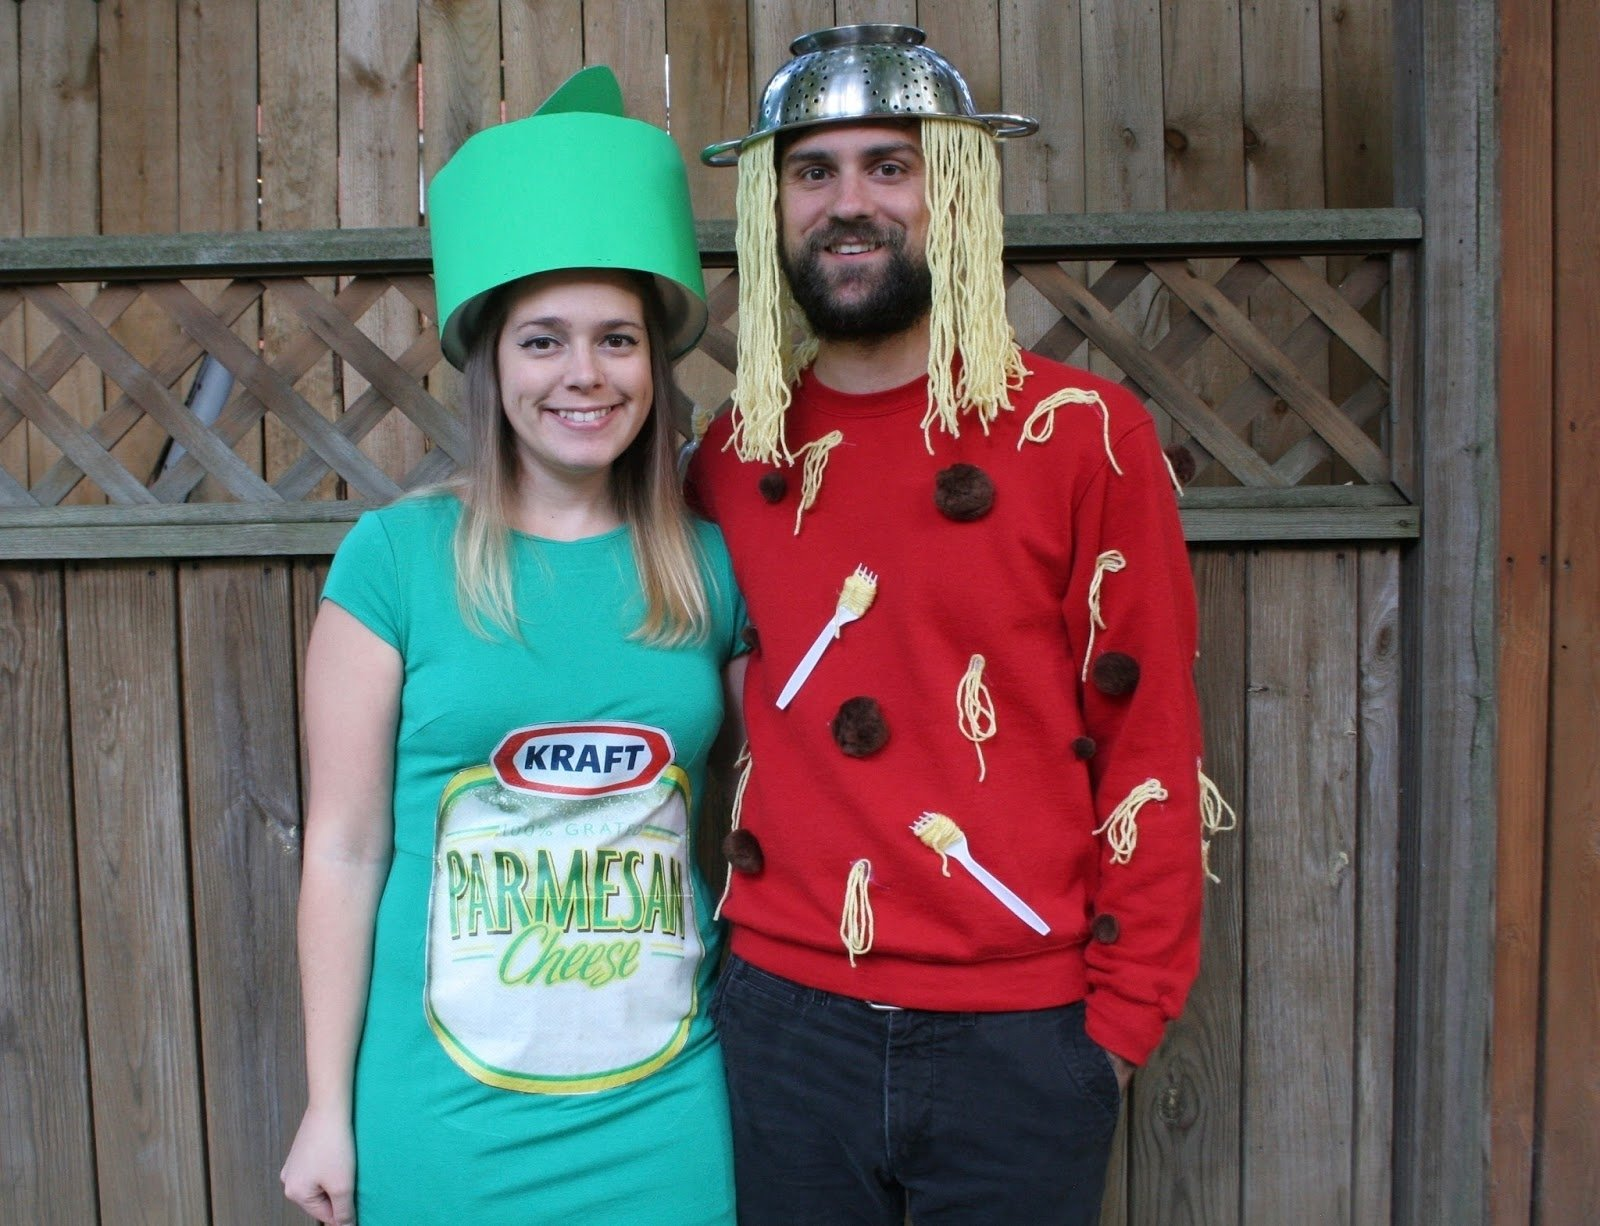 10 Famous Creative Halloween Costume Ideas For Couples our halloween costumes spaghetti parmesan cheese the surznick 7 2020